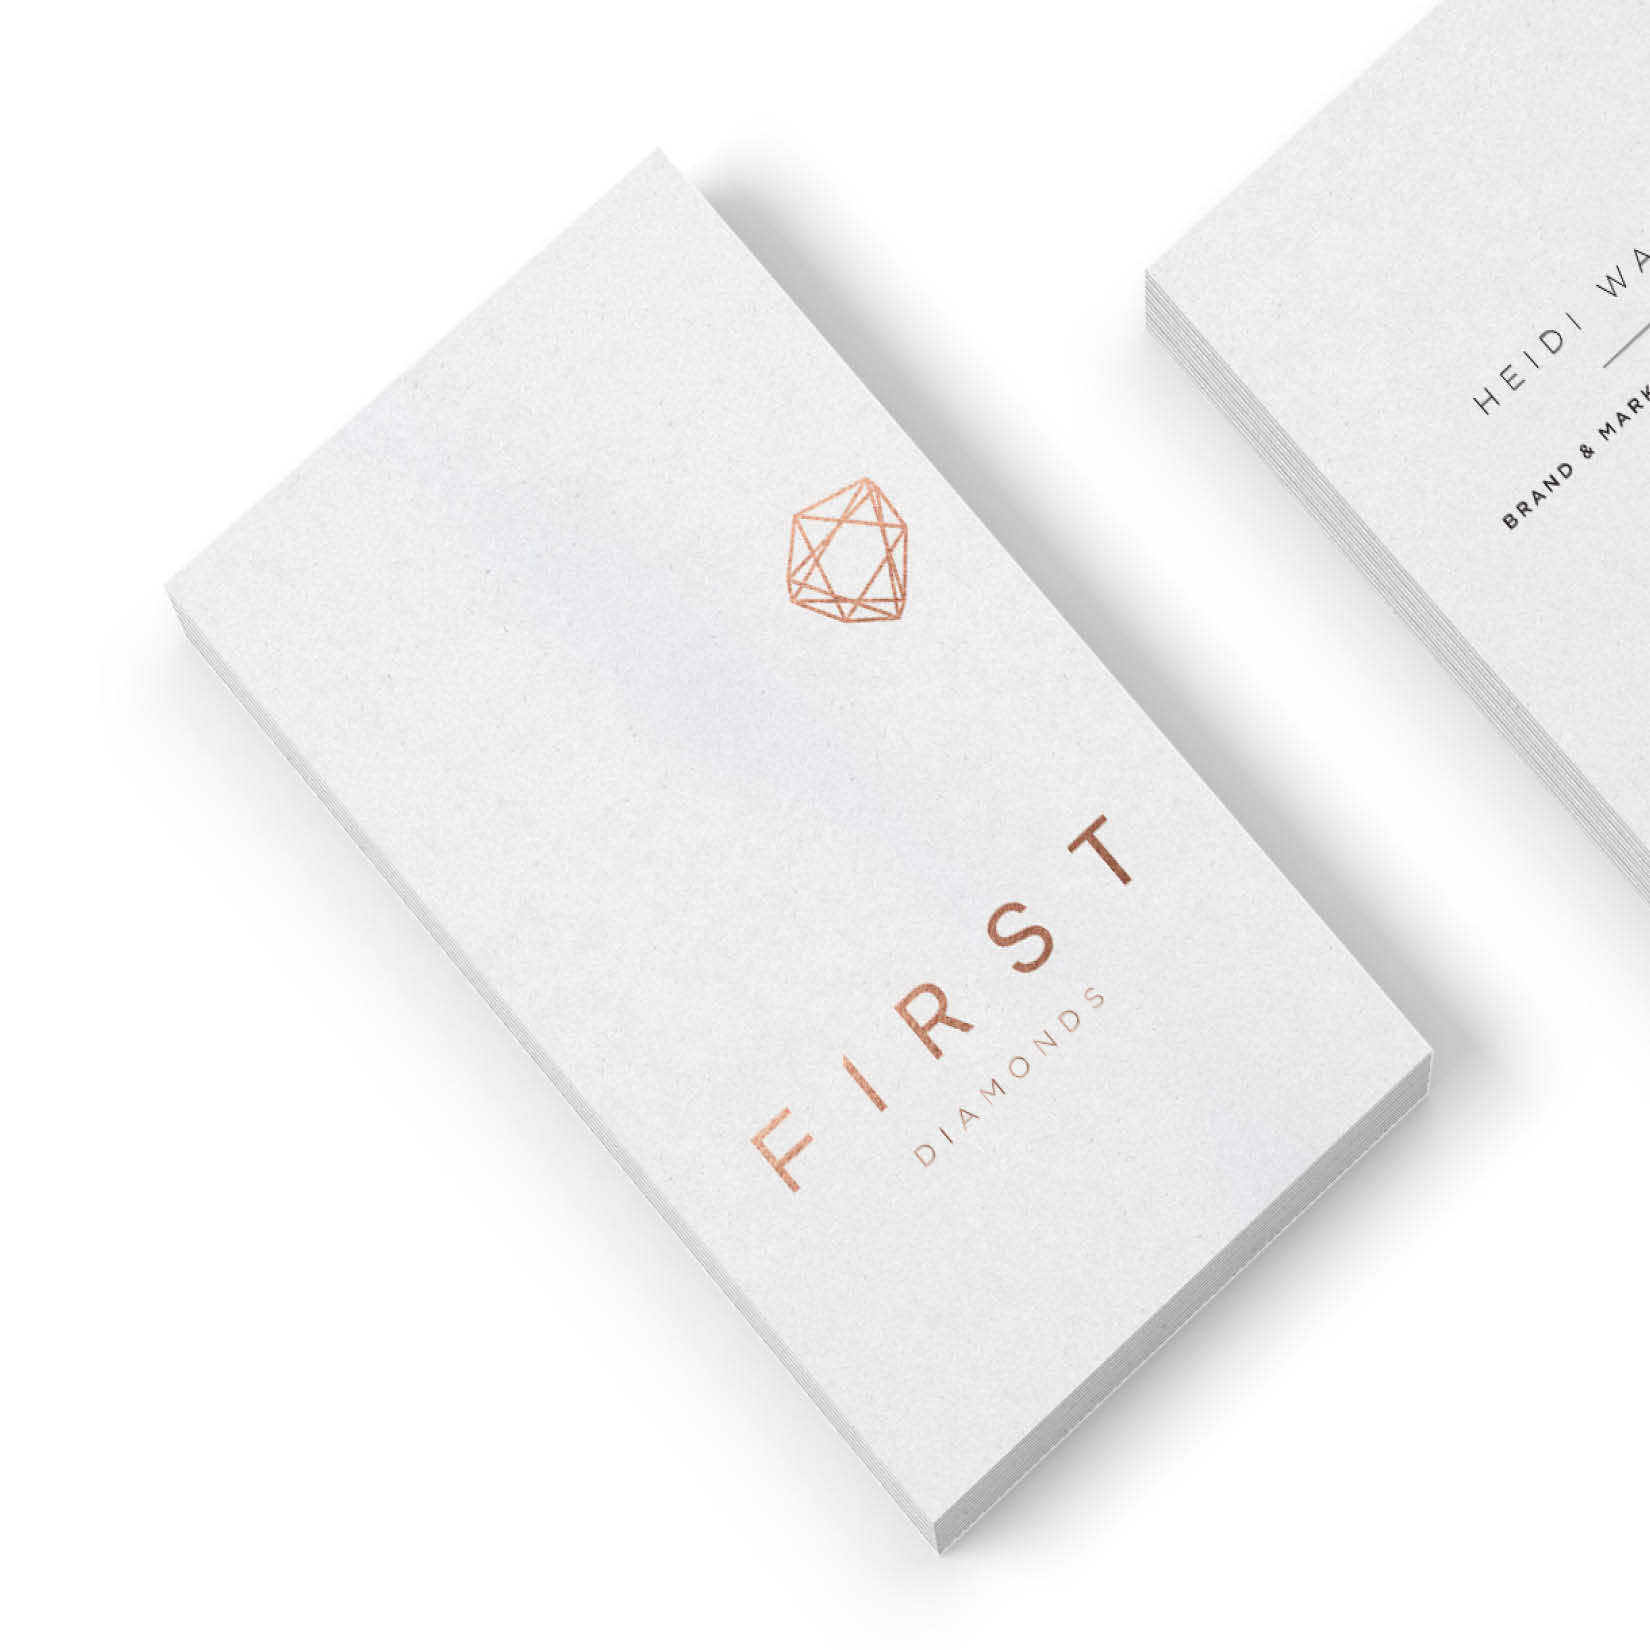 first diamonds | identity design